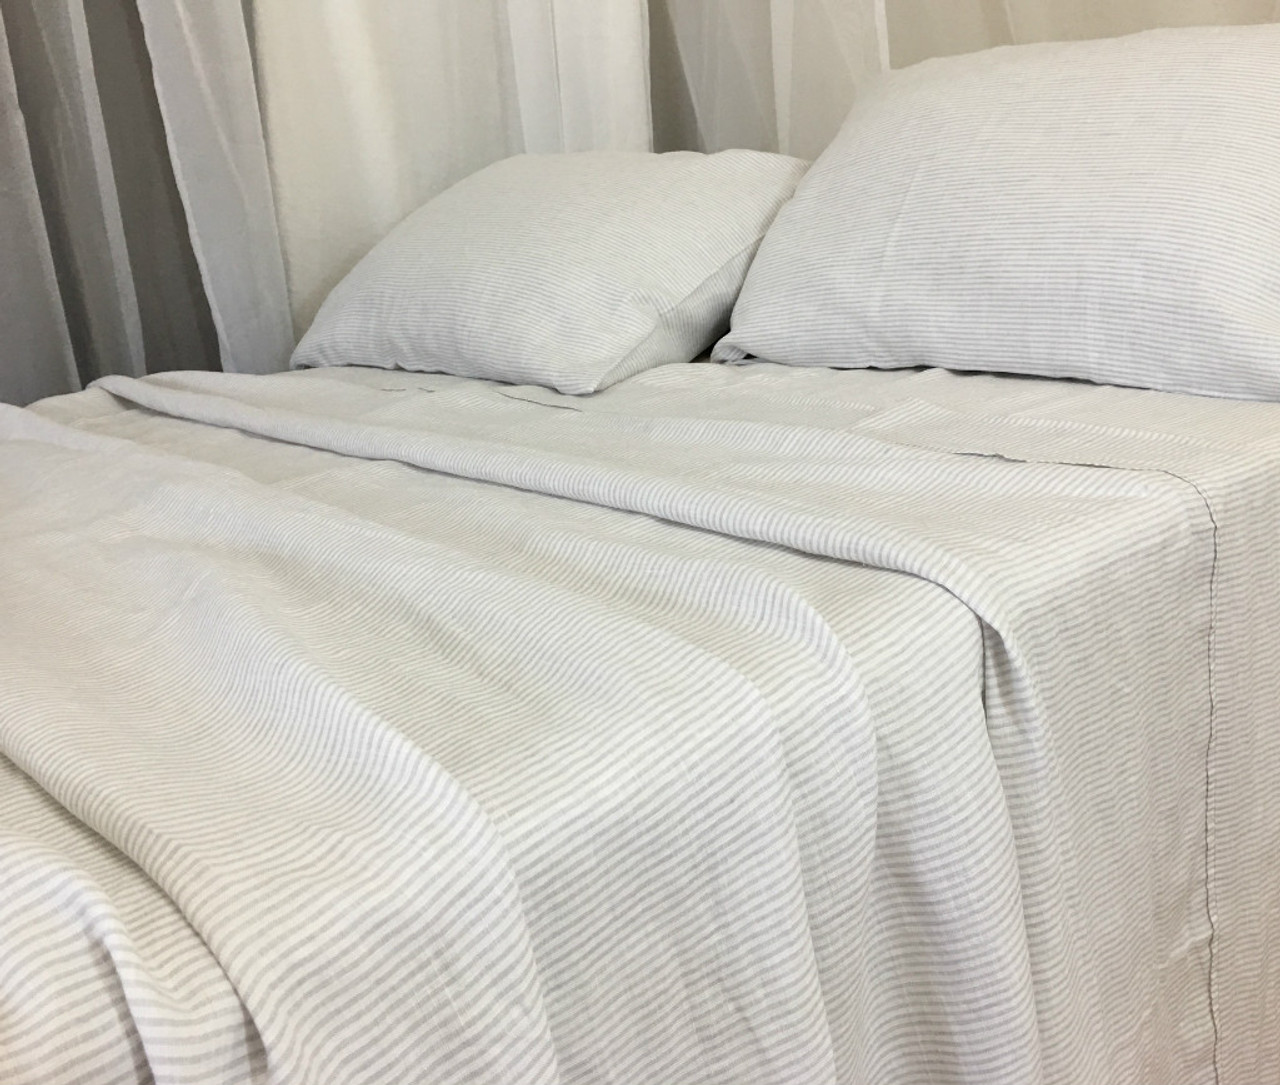 Stone Grey And White Striped Linen Sheets Set